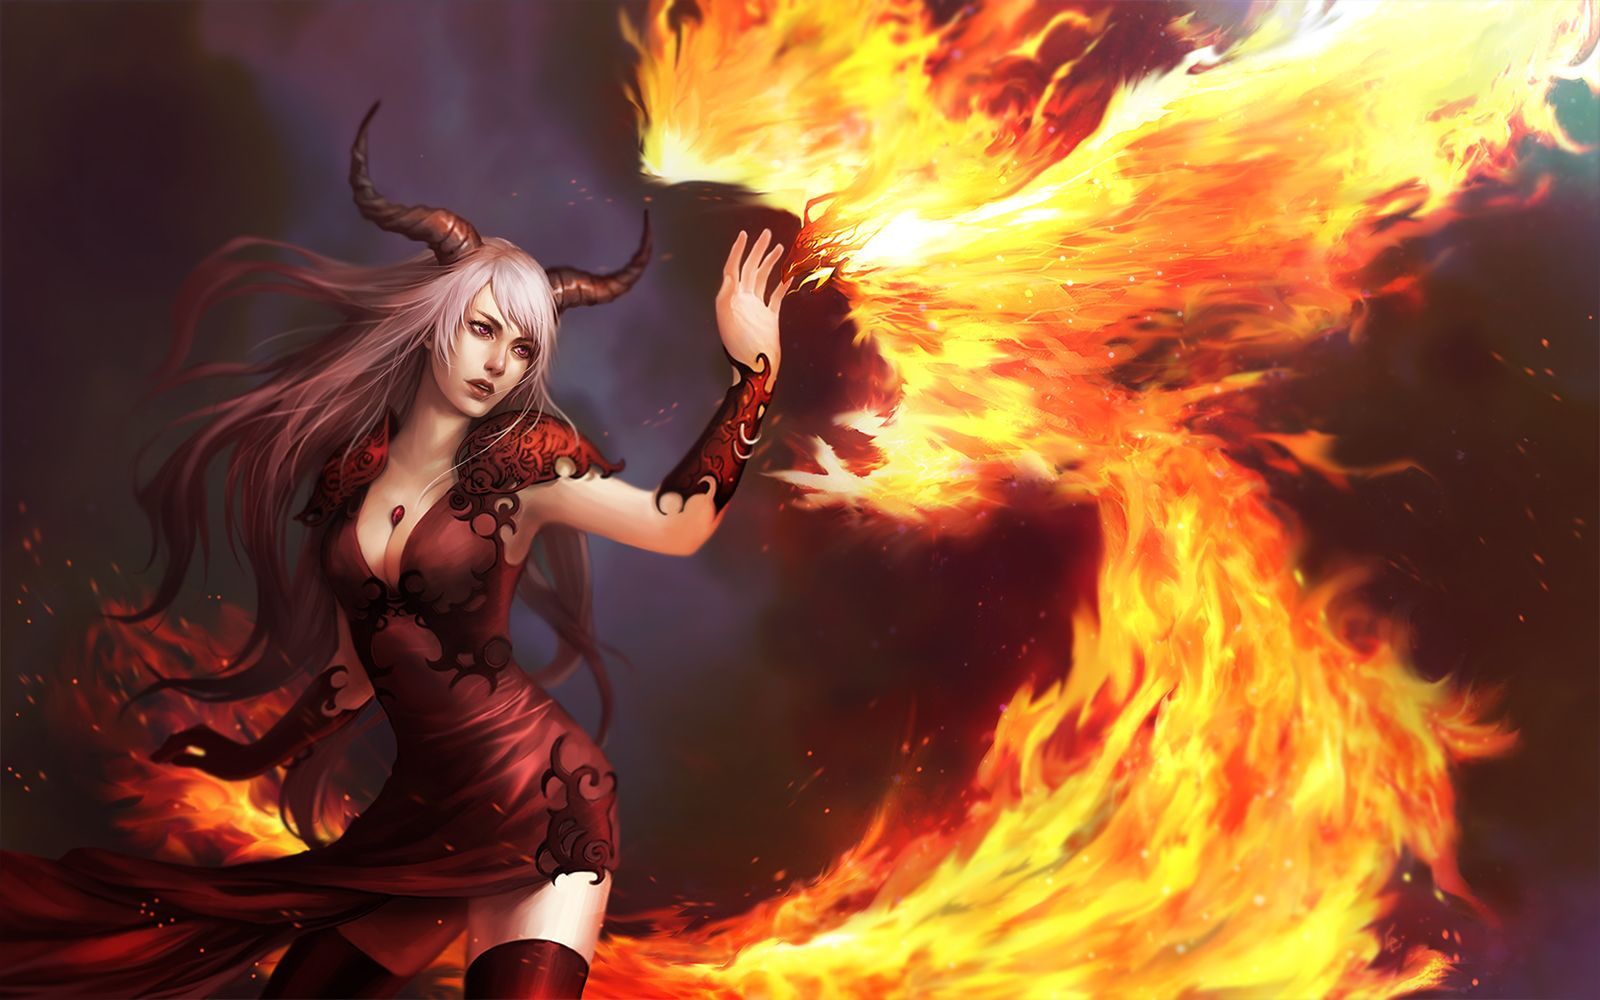 Phoenix_Demoness by Unodu on deviantART